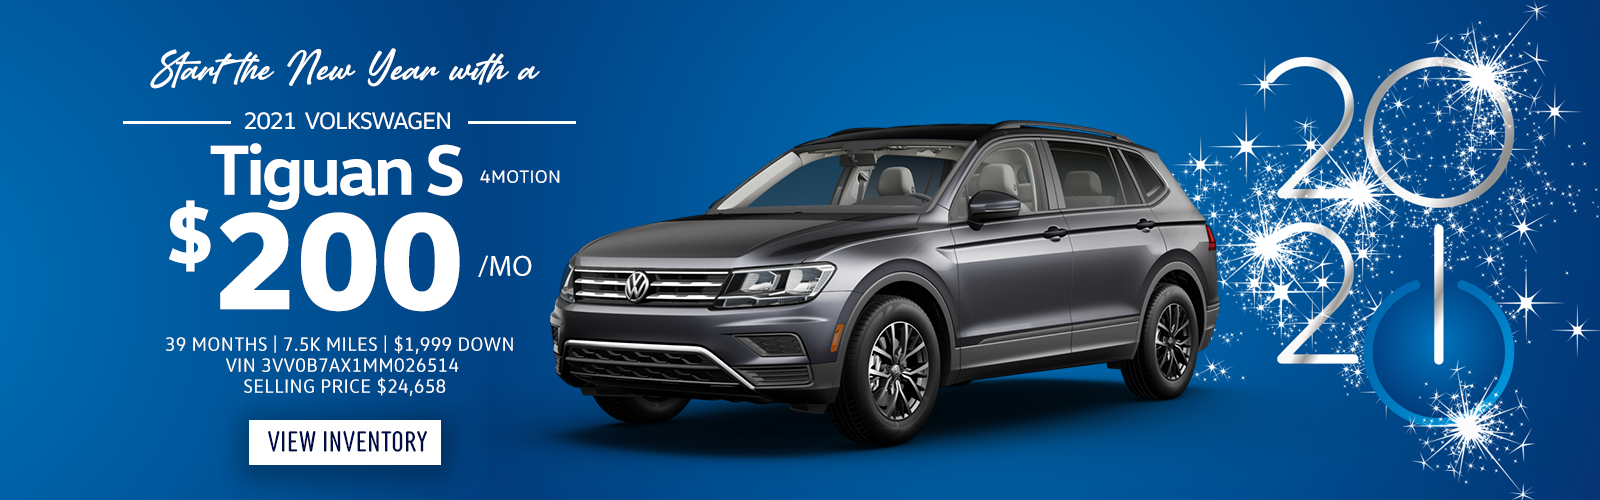 Lease a 2021 Tiguan S 4Motion